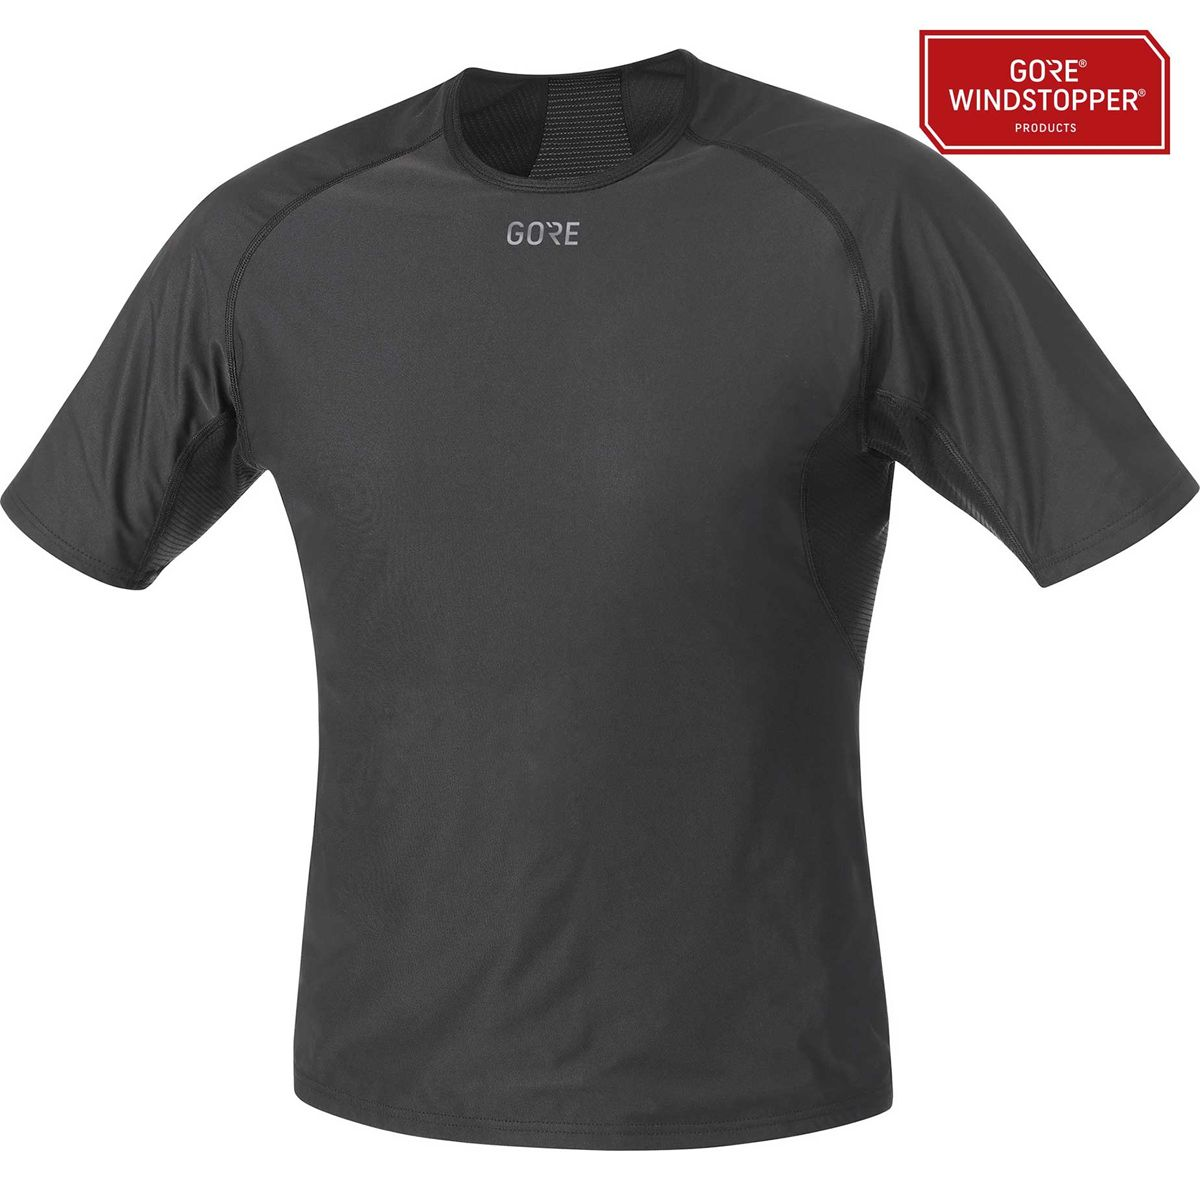 M GORE WINDSTOPPER BASE LAYER SHIRT Unterhemd